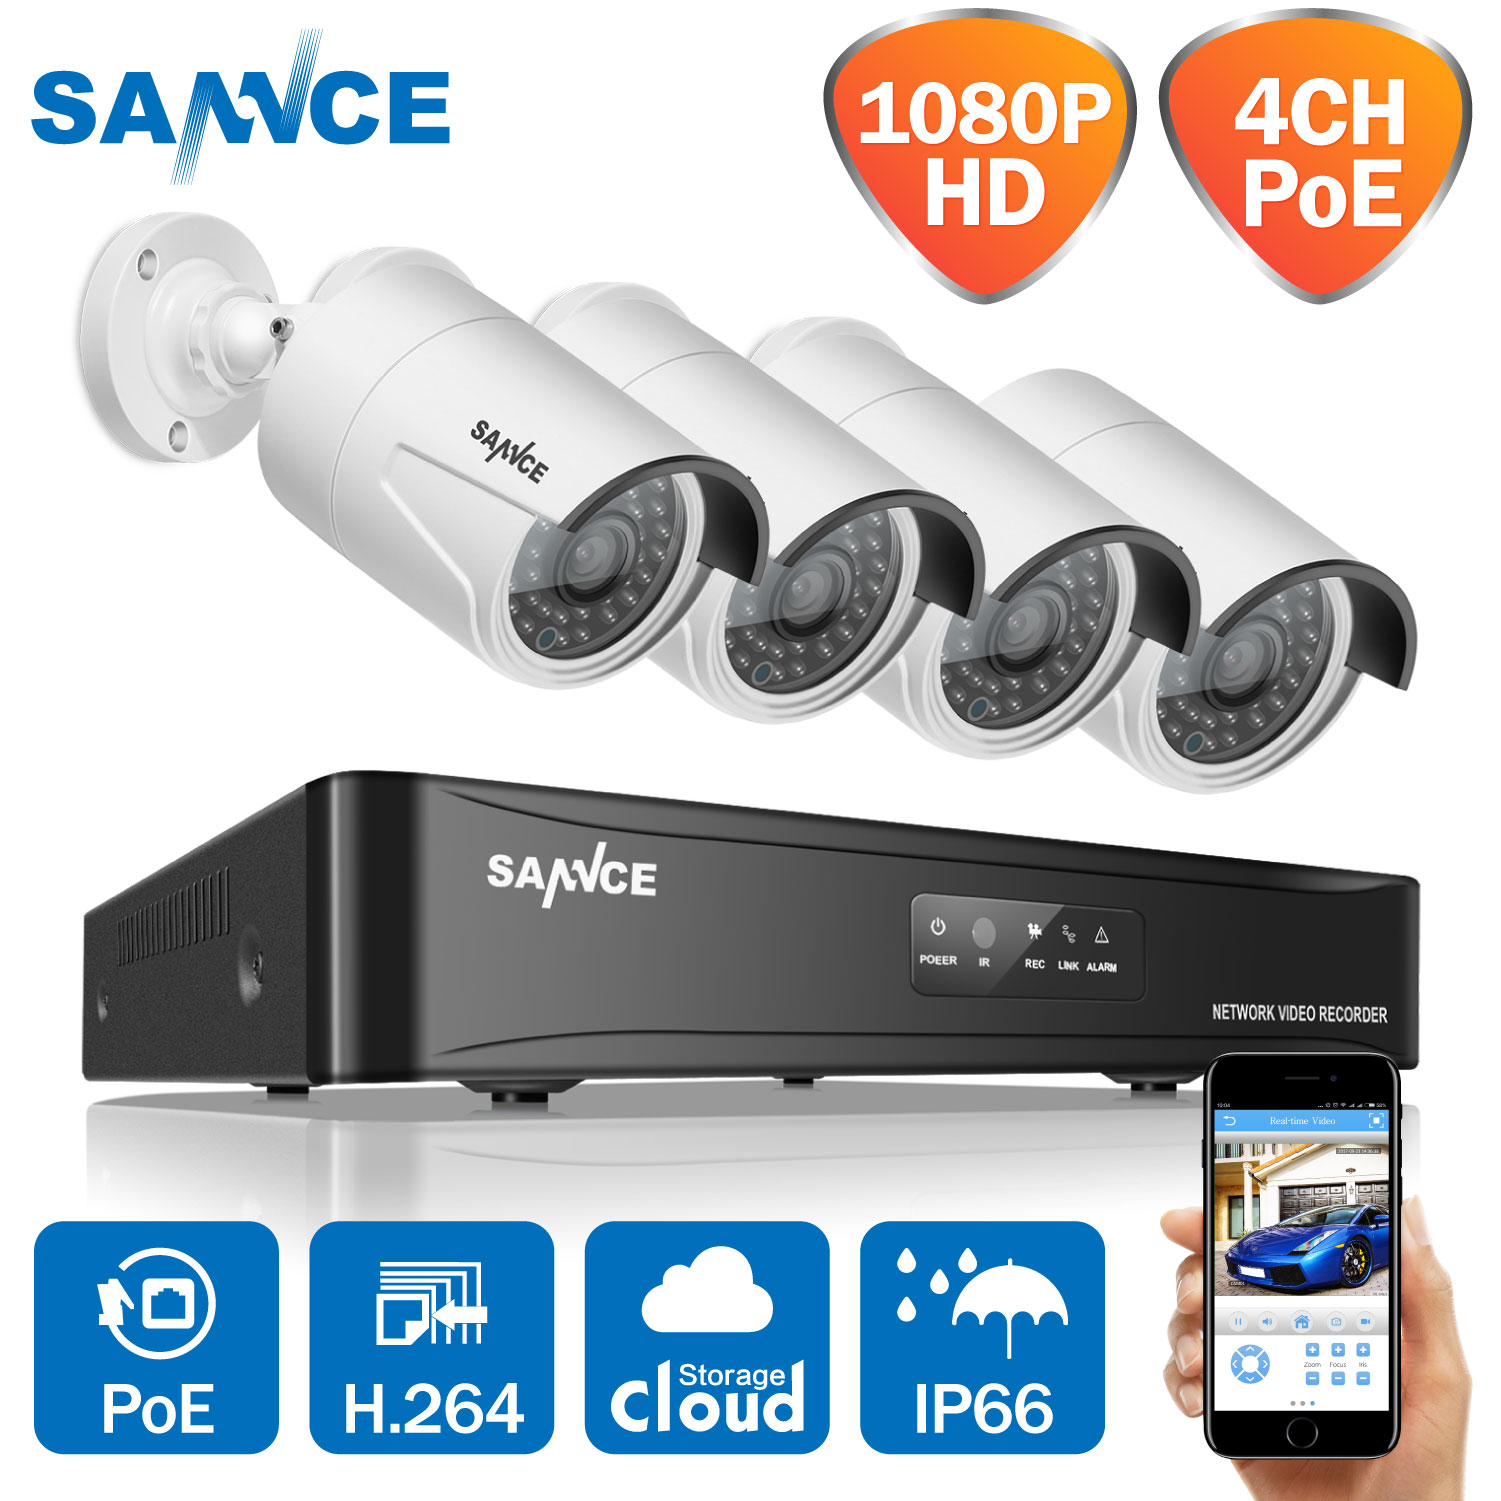 SANNCE 1080P POE video surveillance kit 4CH NVR cctv camera system 4PCS 2.0 MP 1920*1080 Weatherproof CCTV Security IP camera Стикер